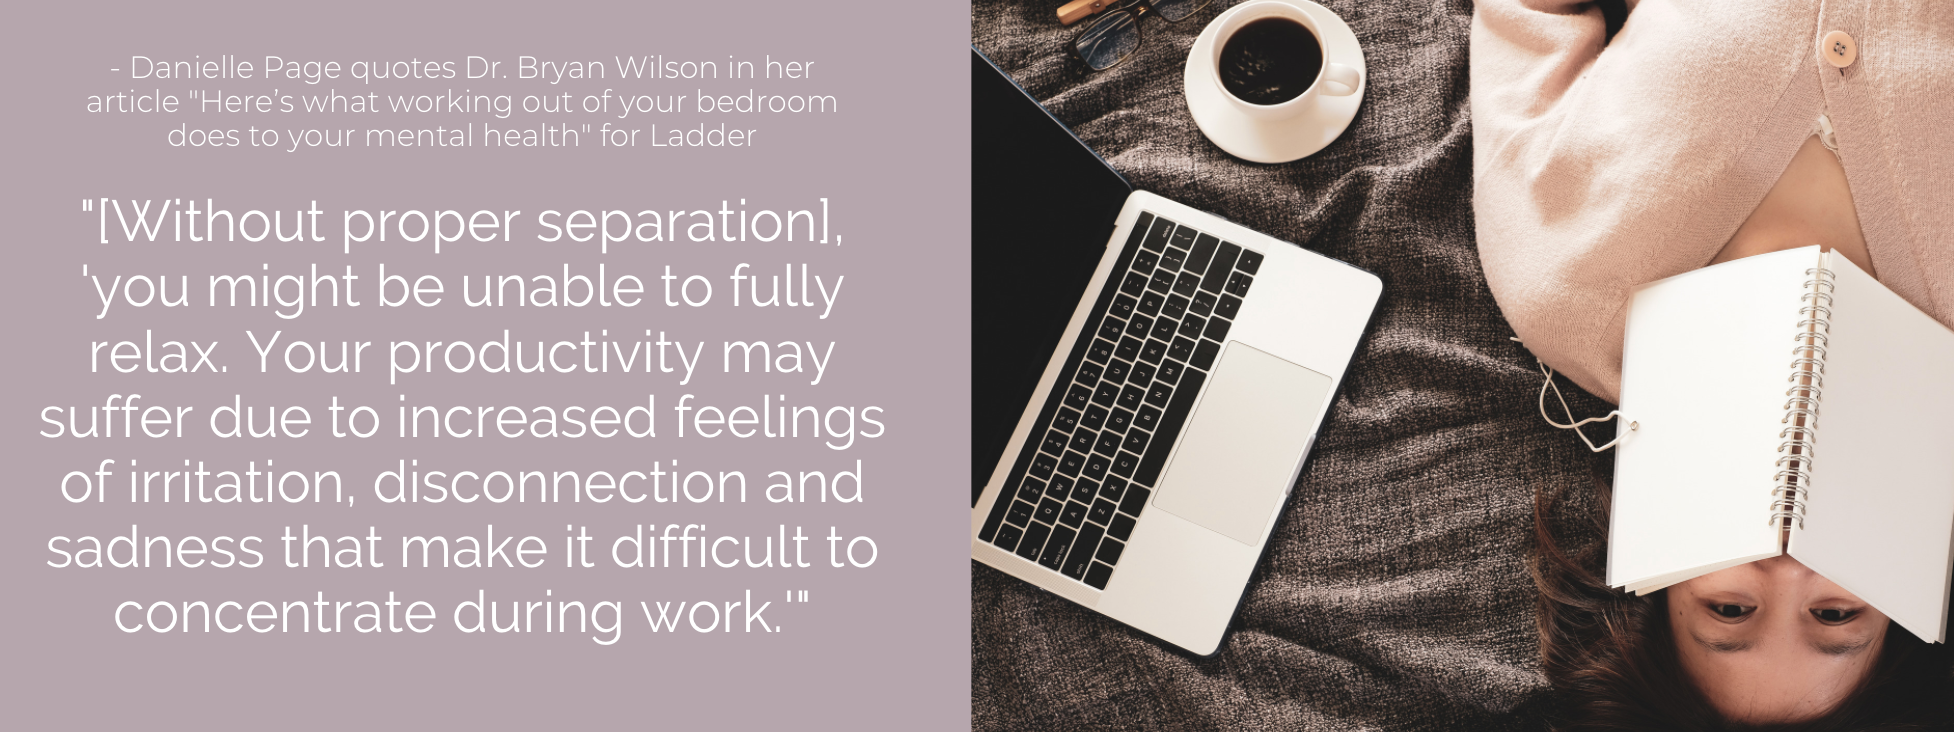 Your productivity may suffer due to increased feelings of irritation